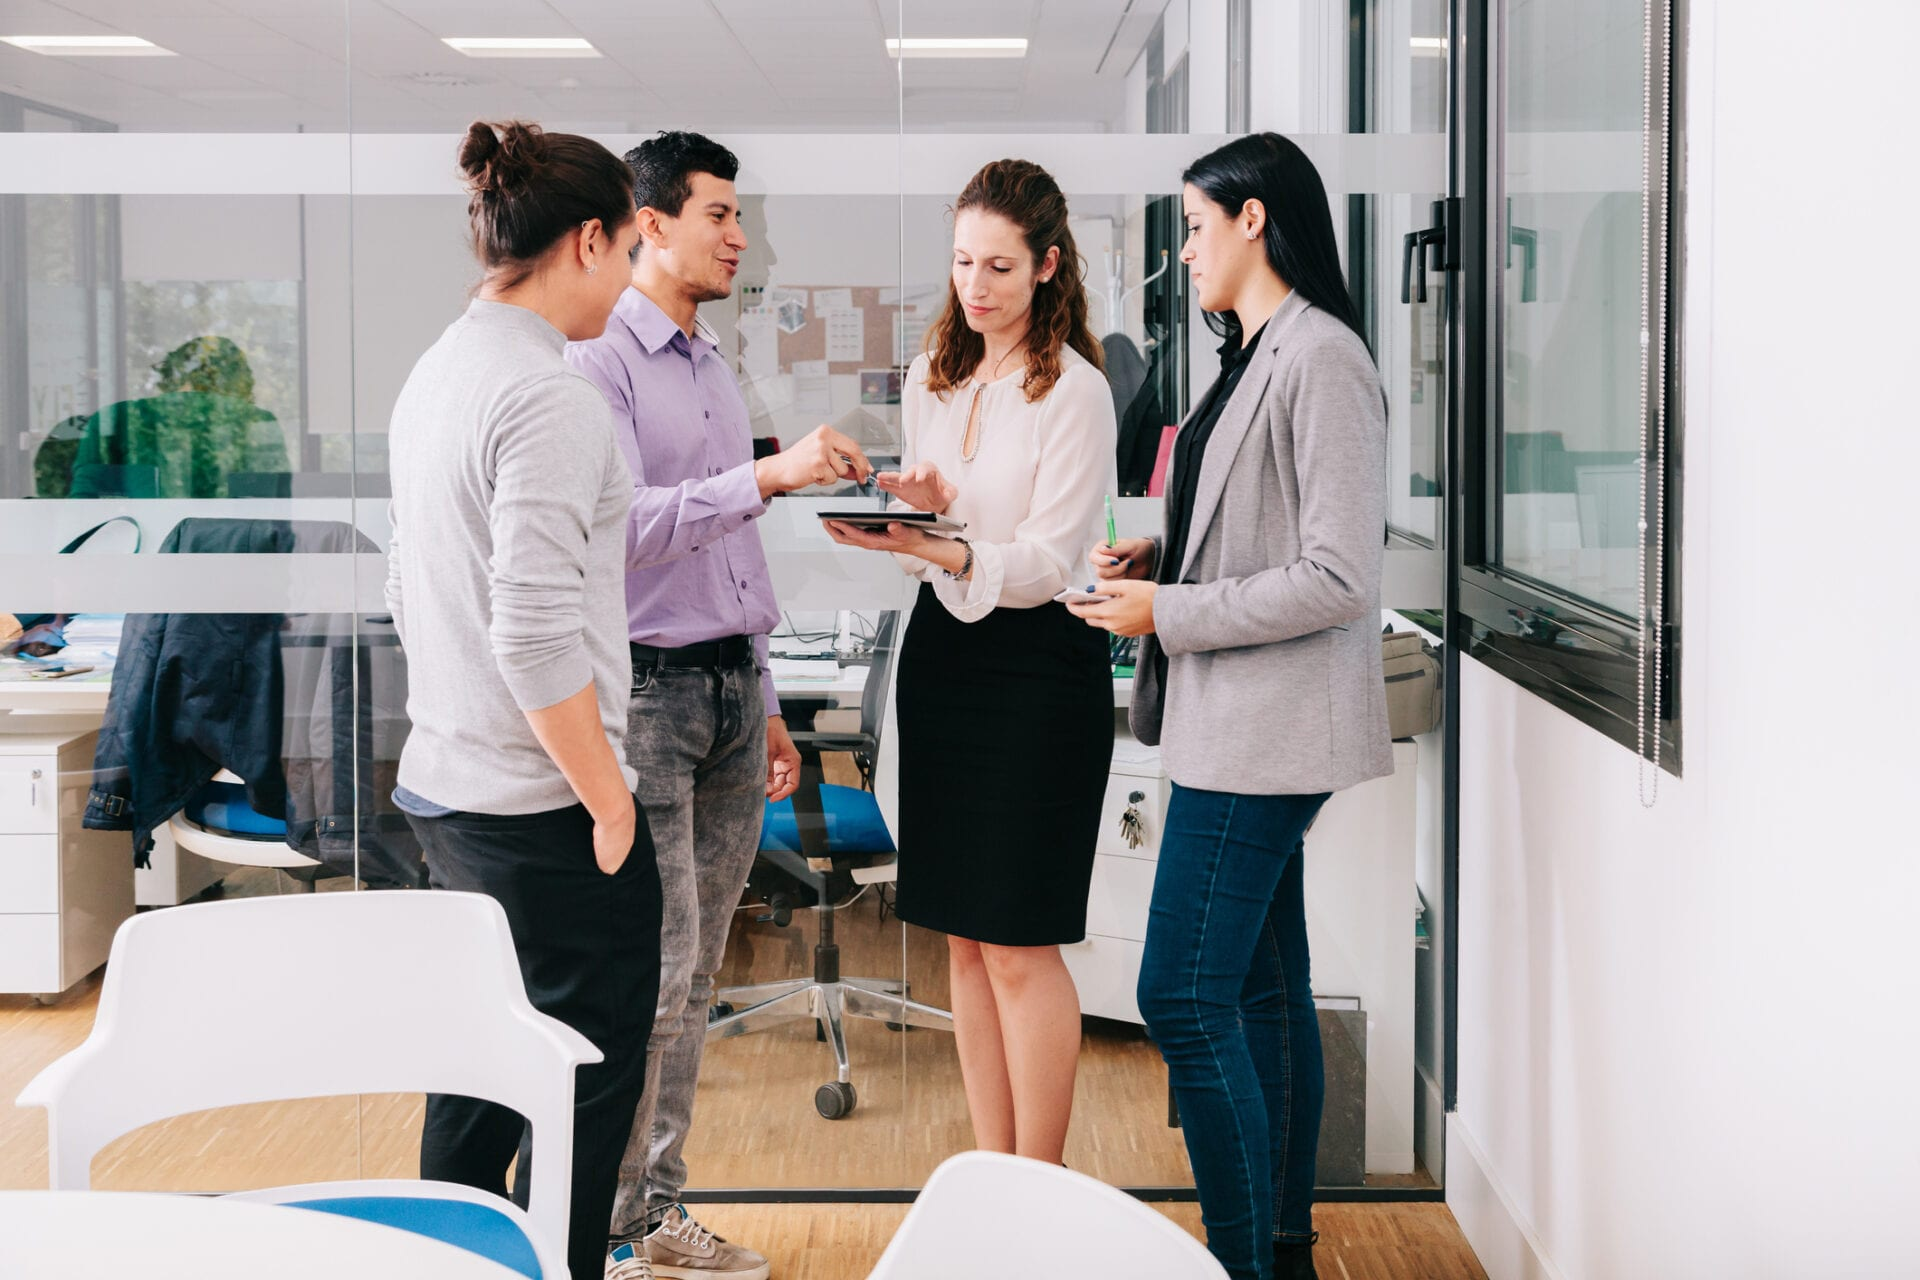 office workers gather in conference room and share implicit knowledge